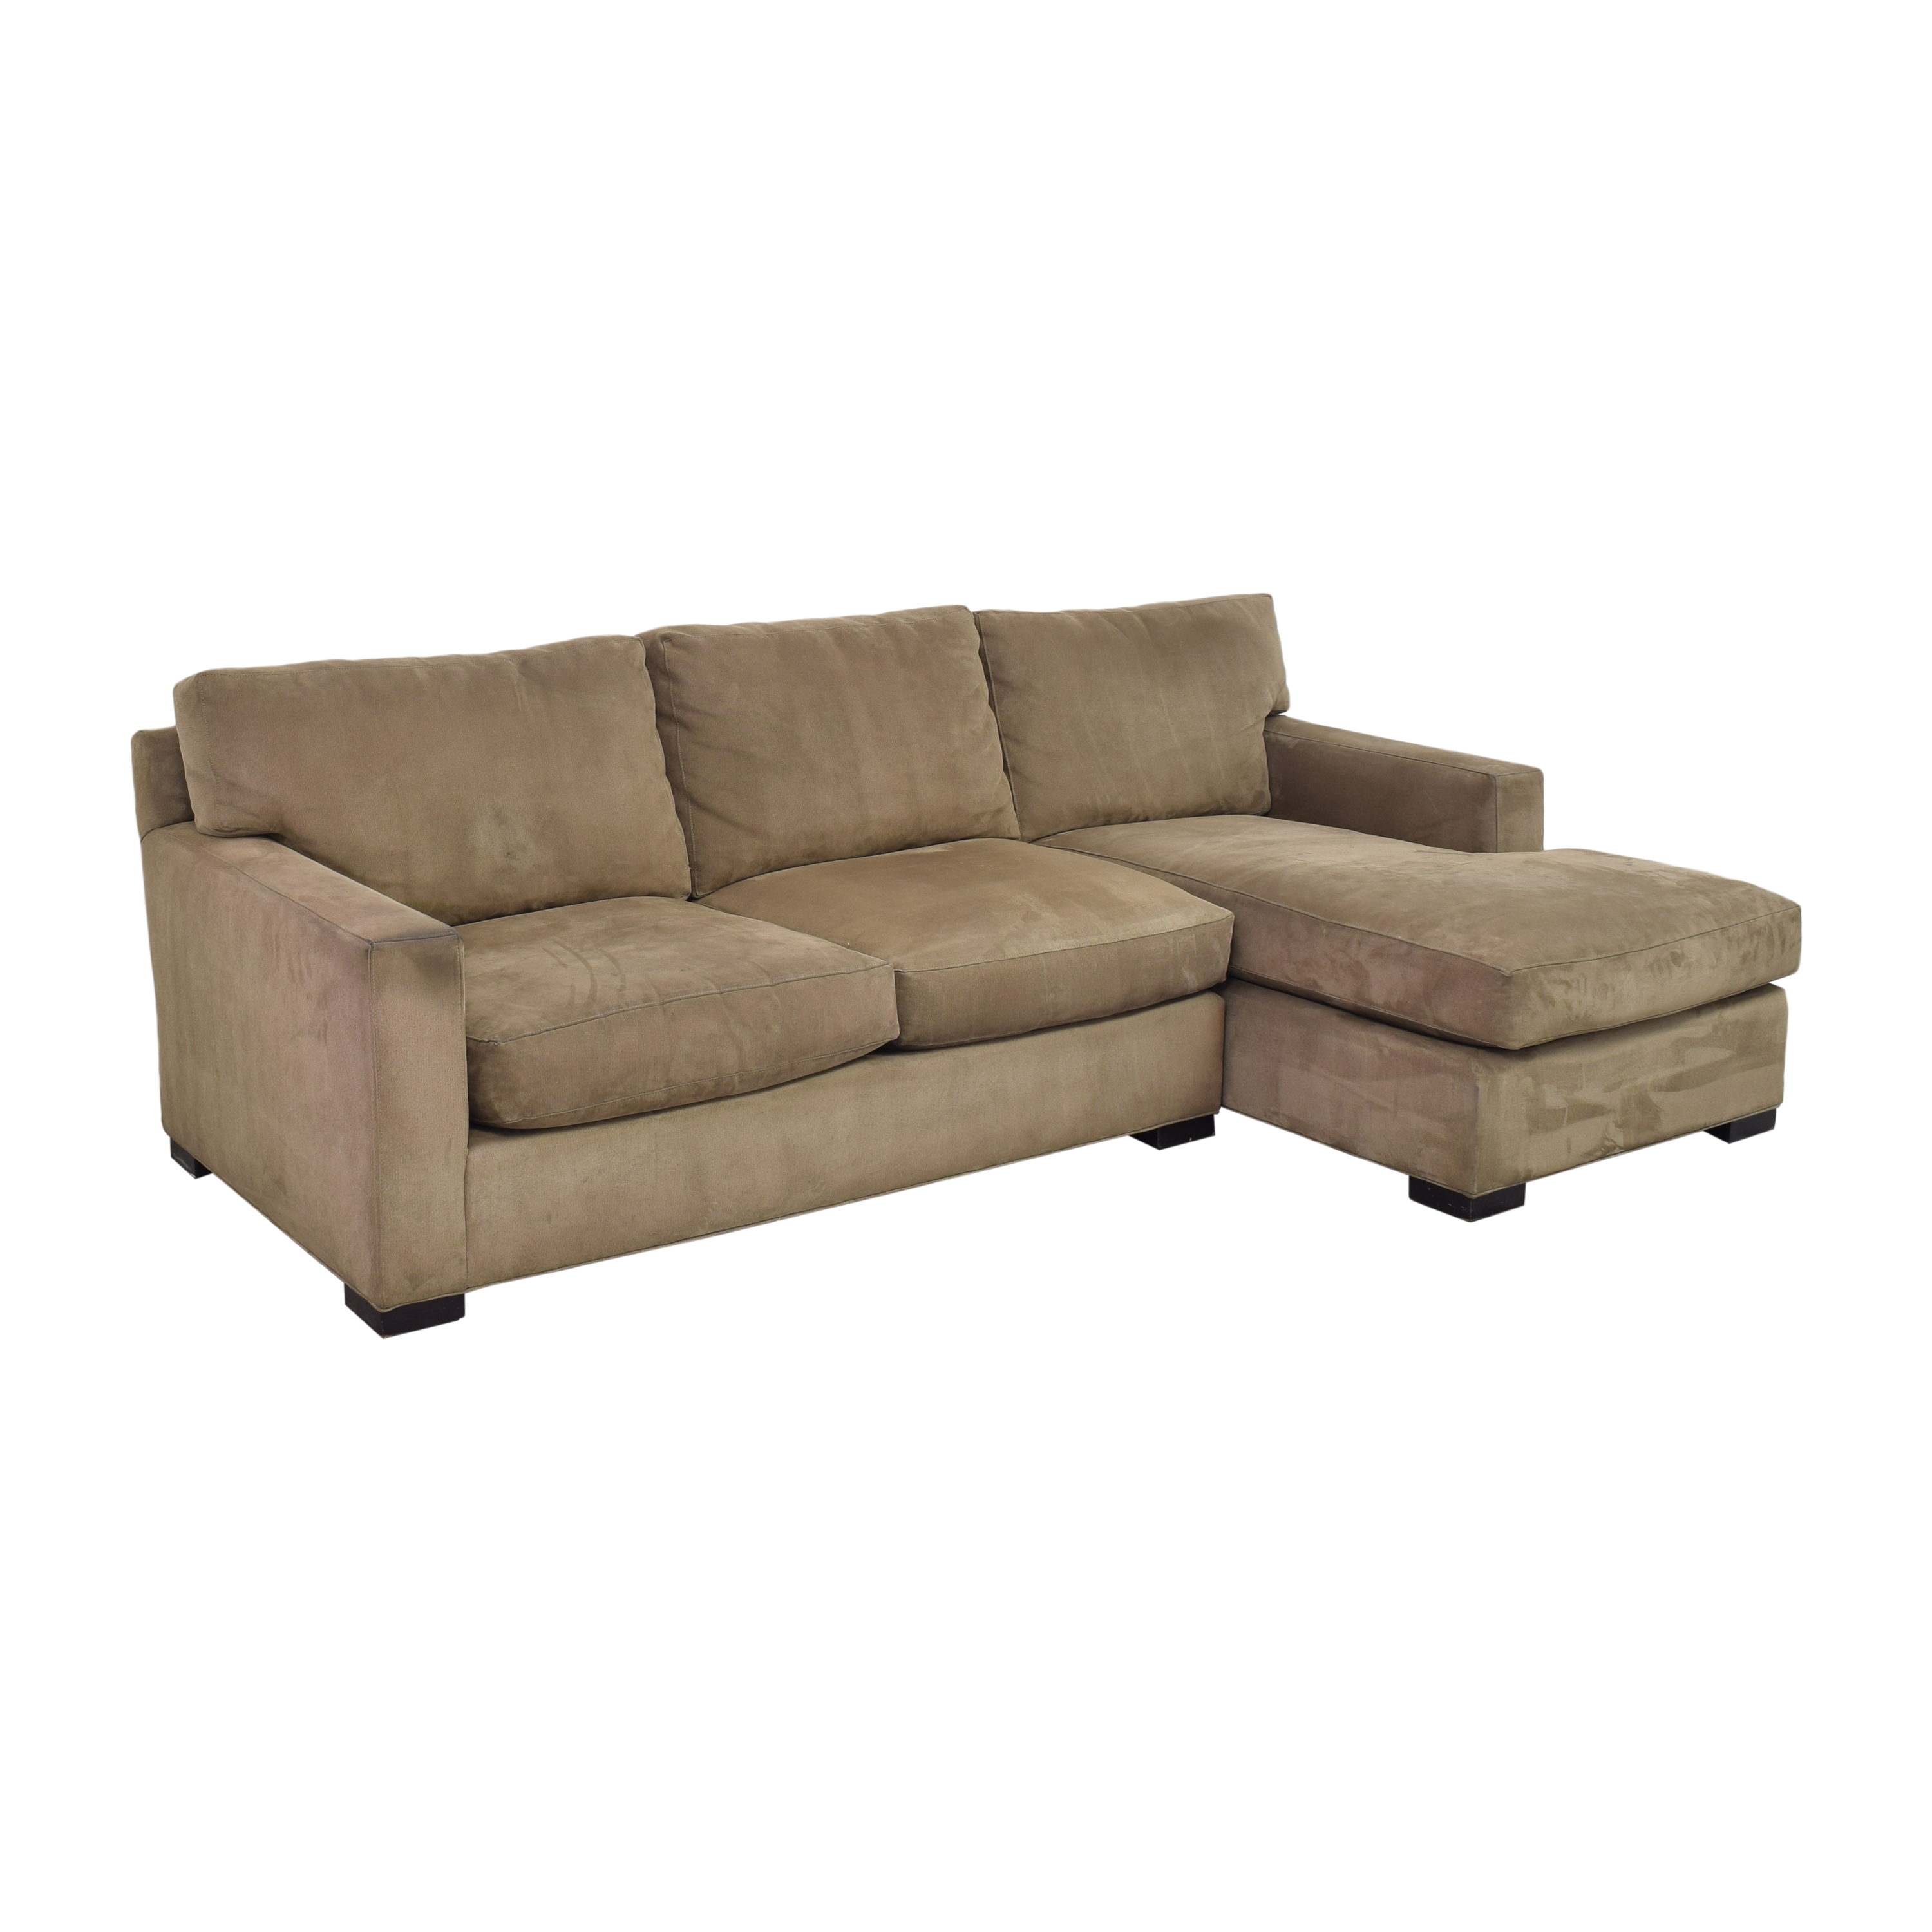 Crate & Barrel Crate & Barrel Axis II Chaise Sectional Sofa price